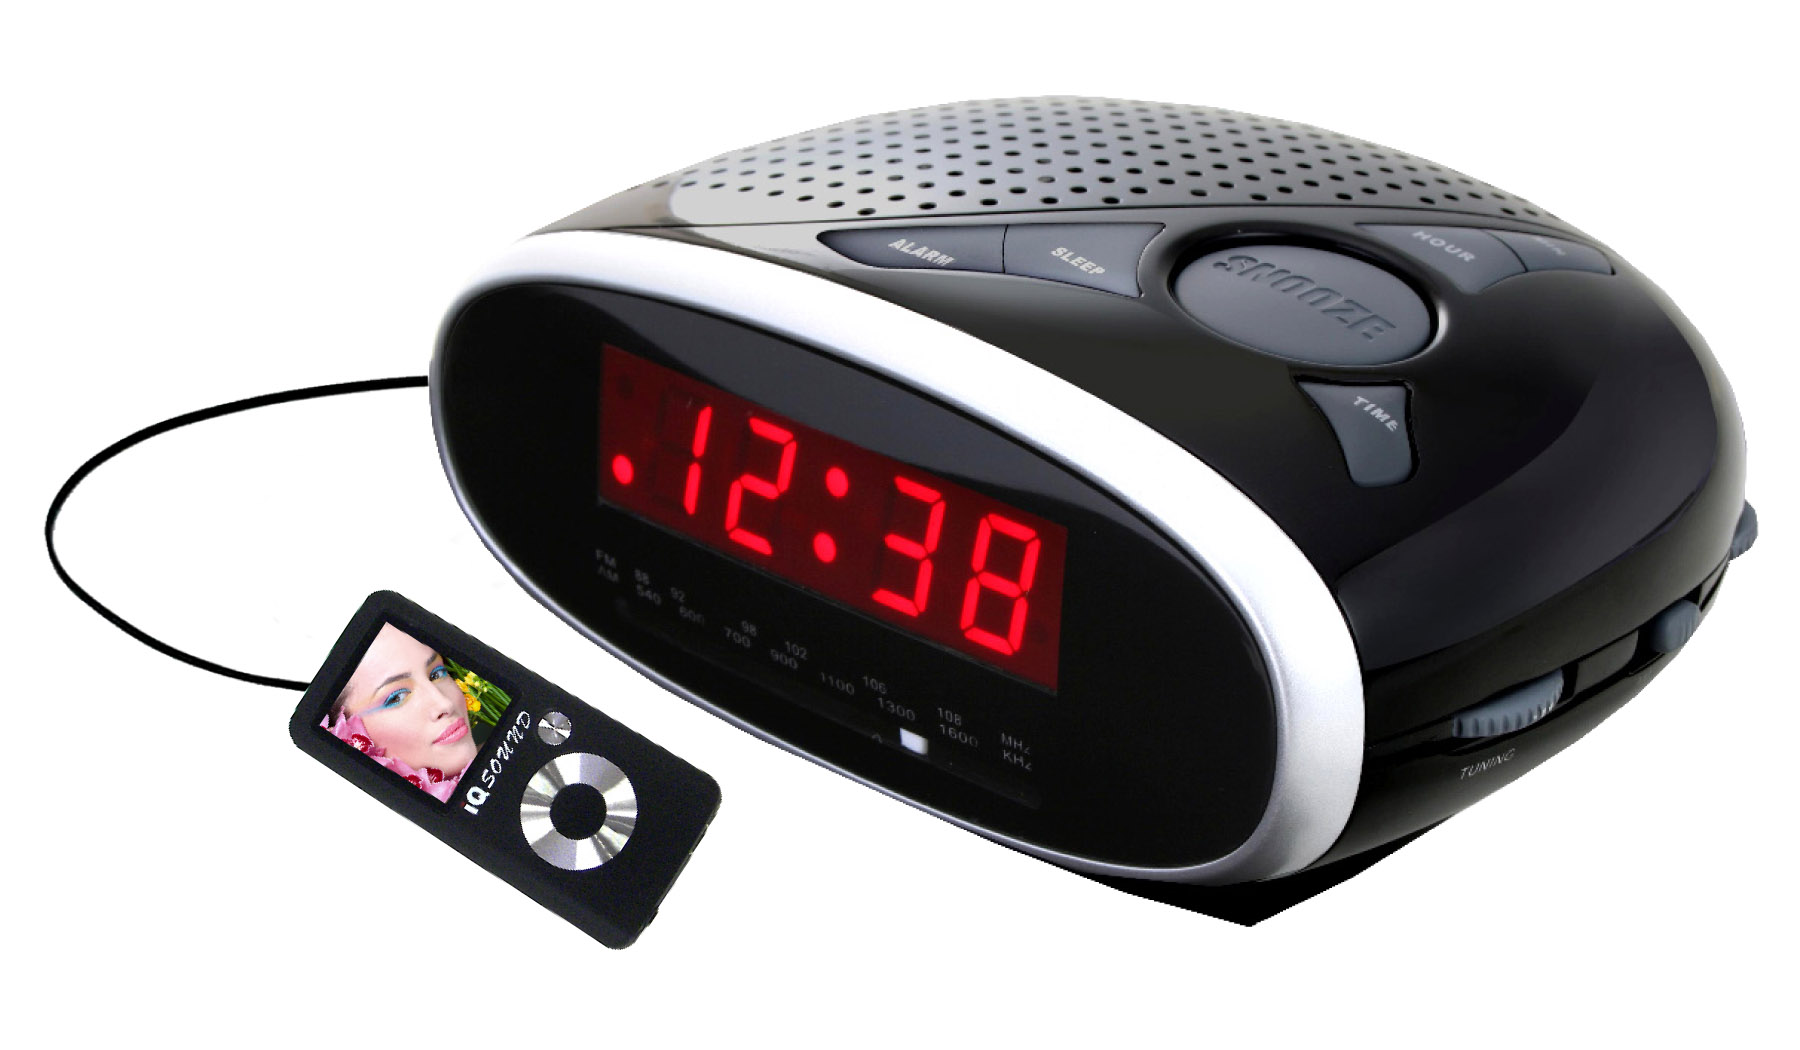 digital am fm alarm clocks supersonic inc sc 372 digital alarm clock with am fm radio. Black Bedroom Furniture Sets. Home Design Ideas